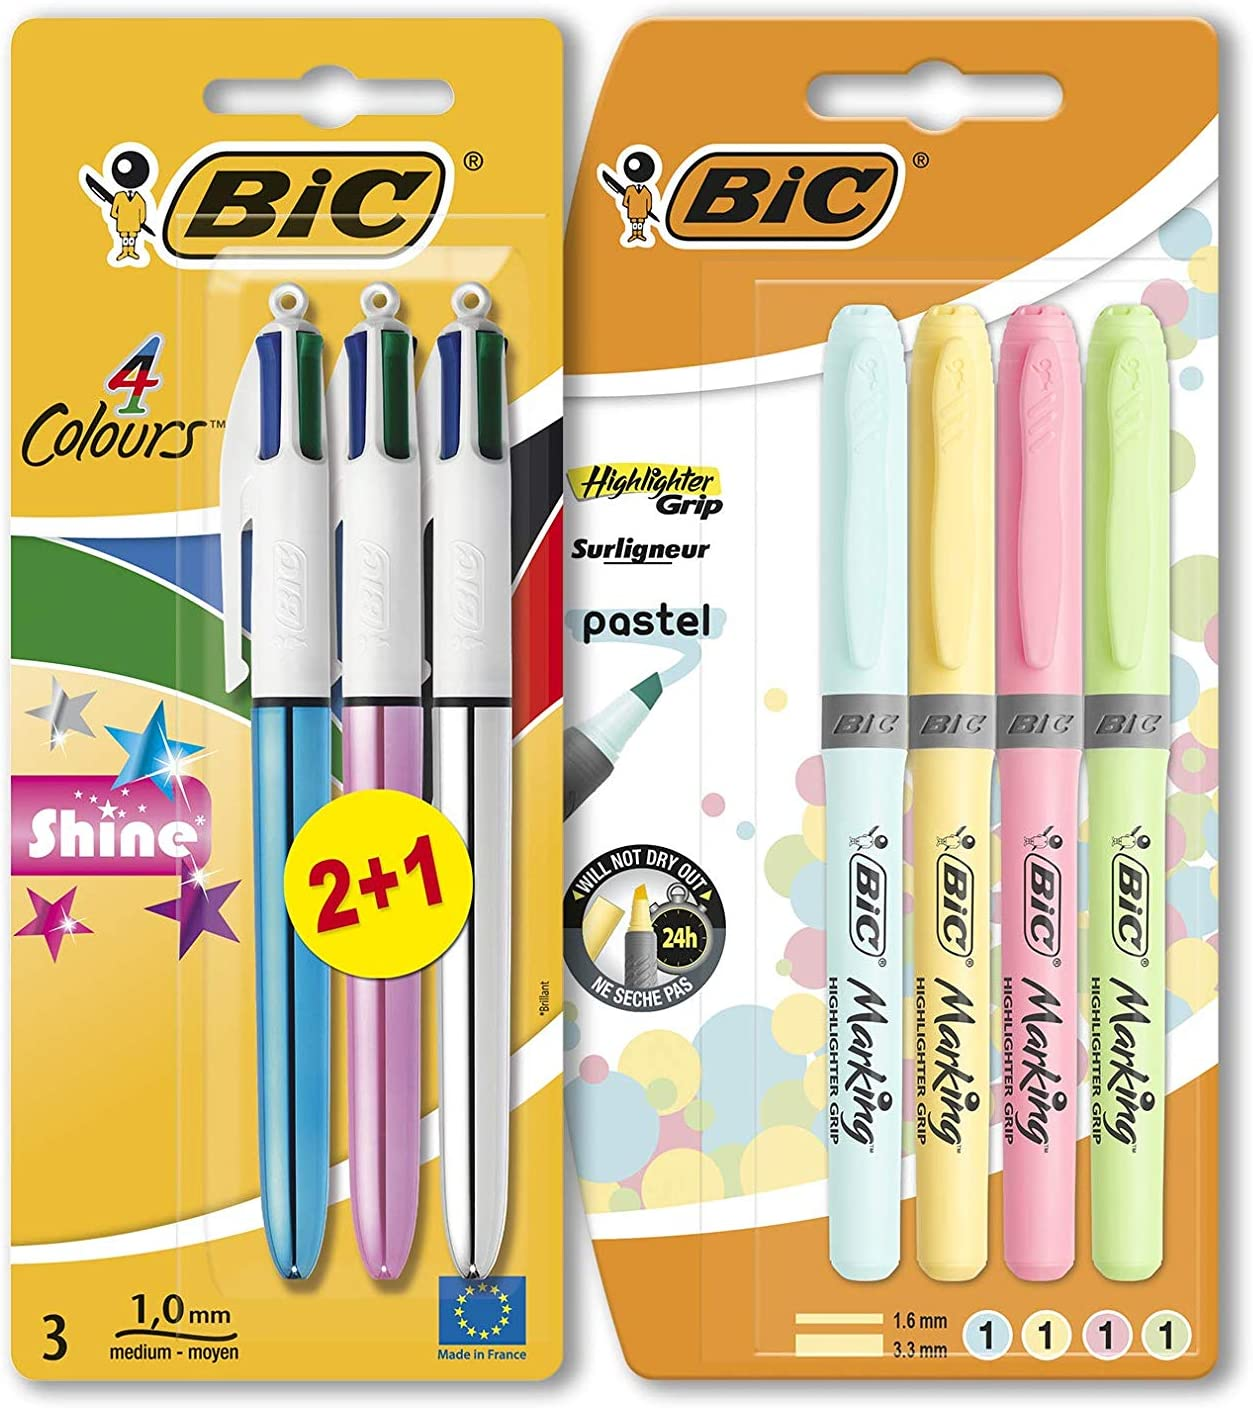 BIC Shine Pack - 4 Marcadores Highlighter Grip Pastel (Azul ...